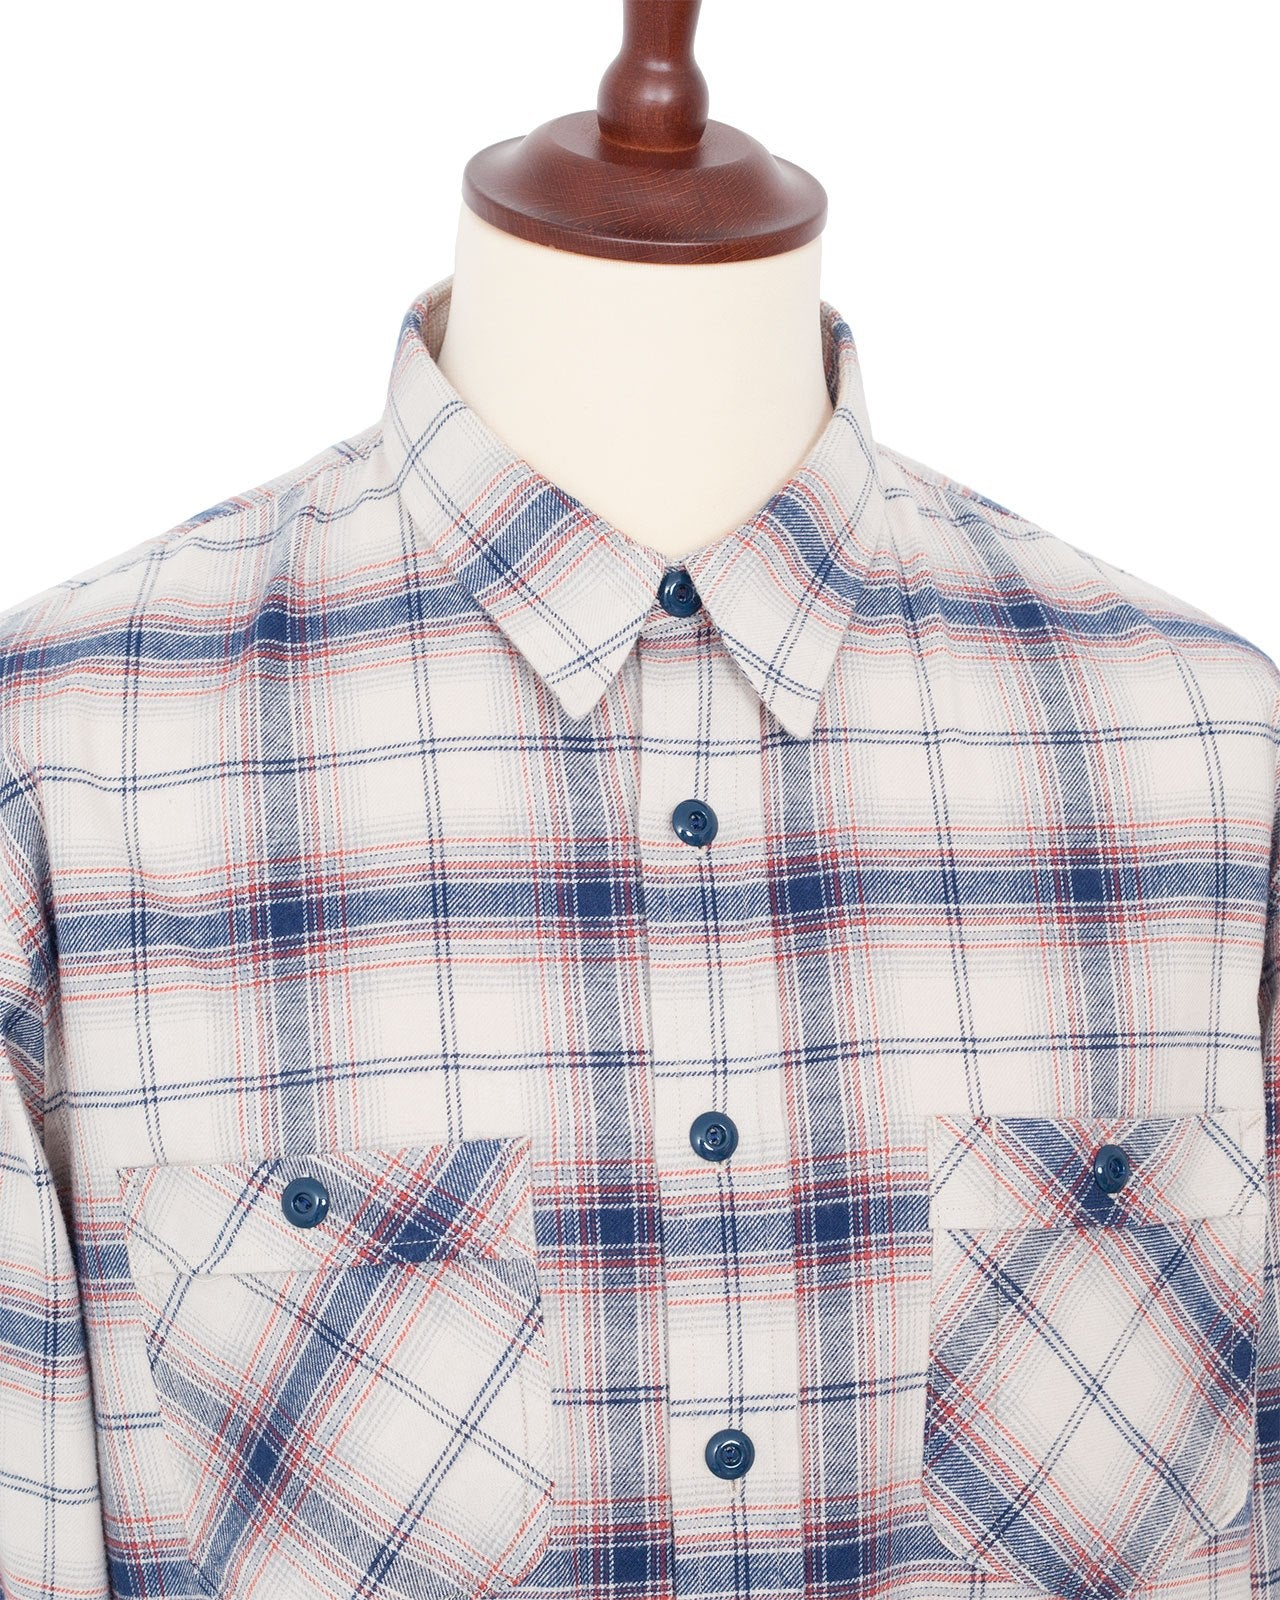 Indigofera Holden Shirt, Check Flannel, White/Blue/Red